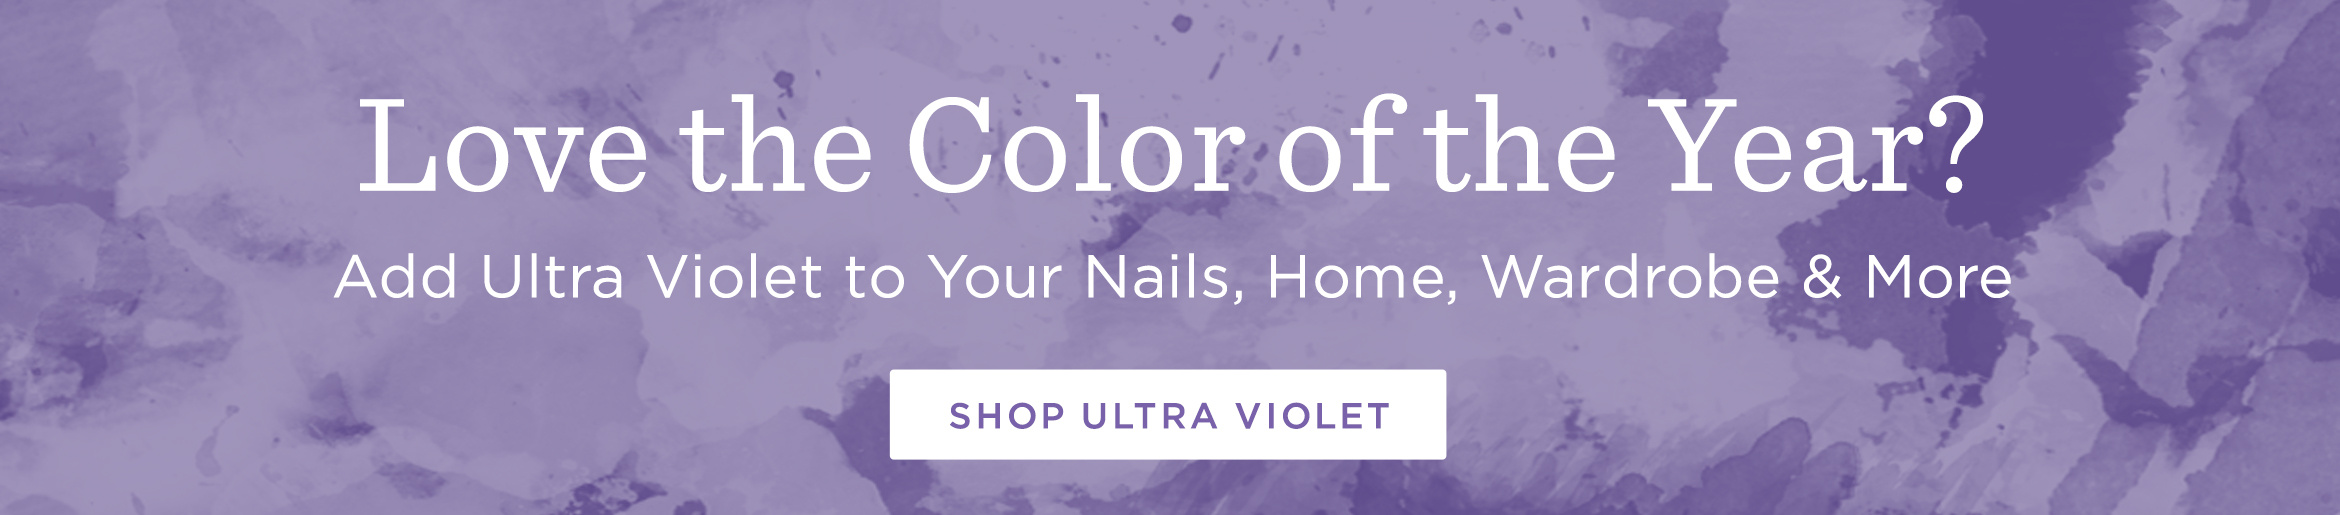 Love the Color of the Year?